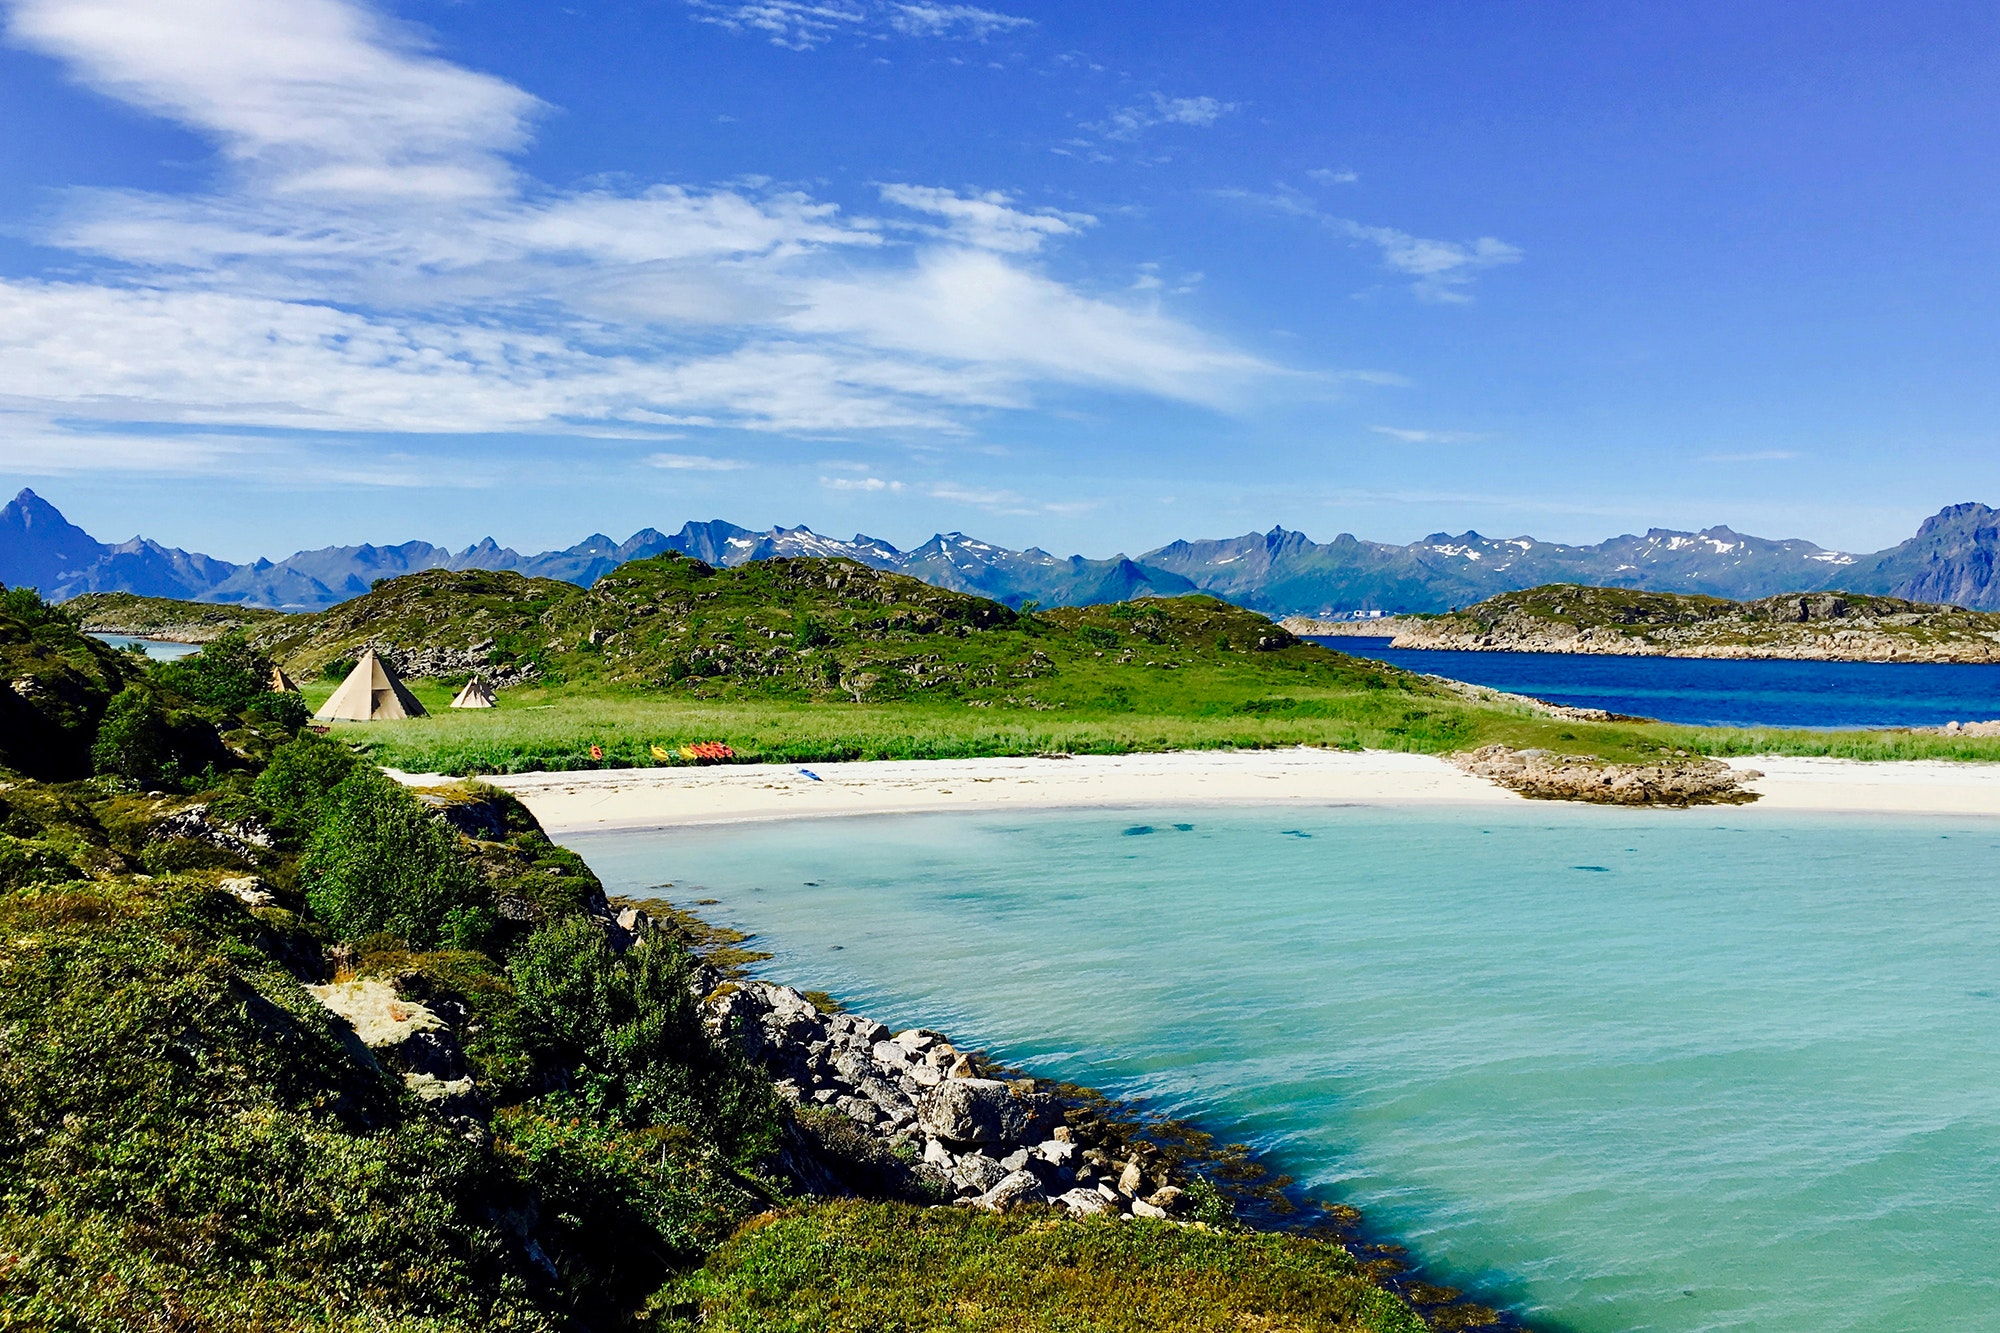 Enjoy the midnight sun from a beach in the Lofoten Islands.